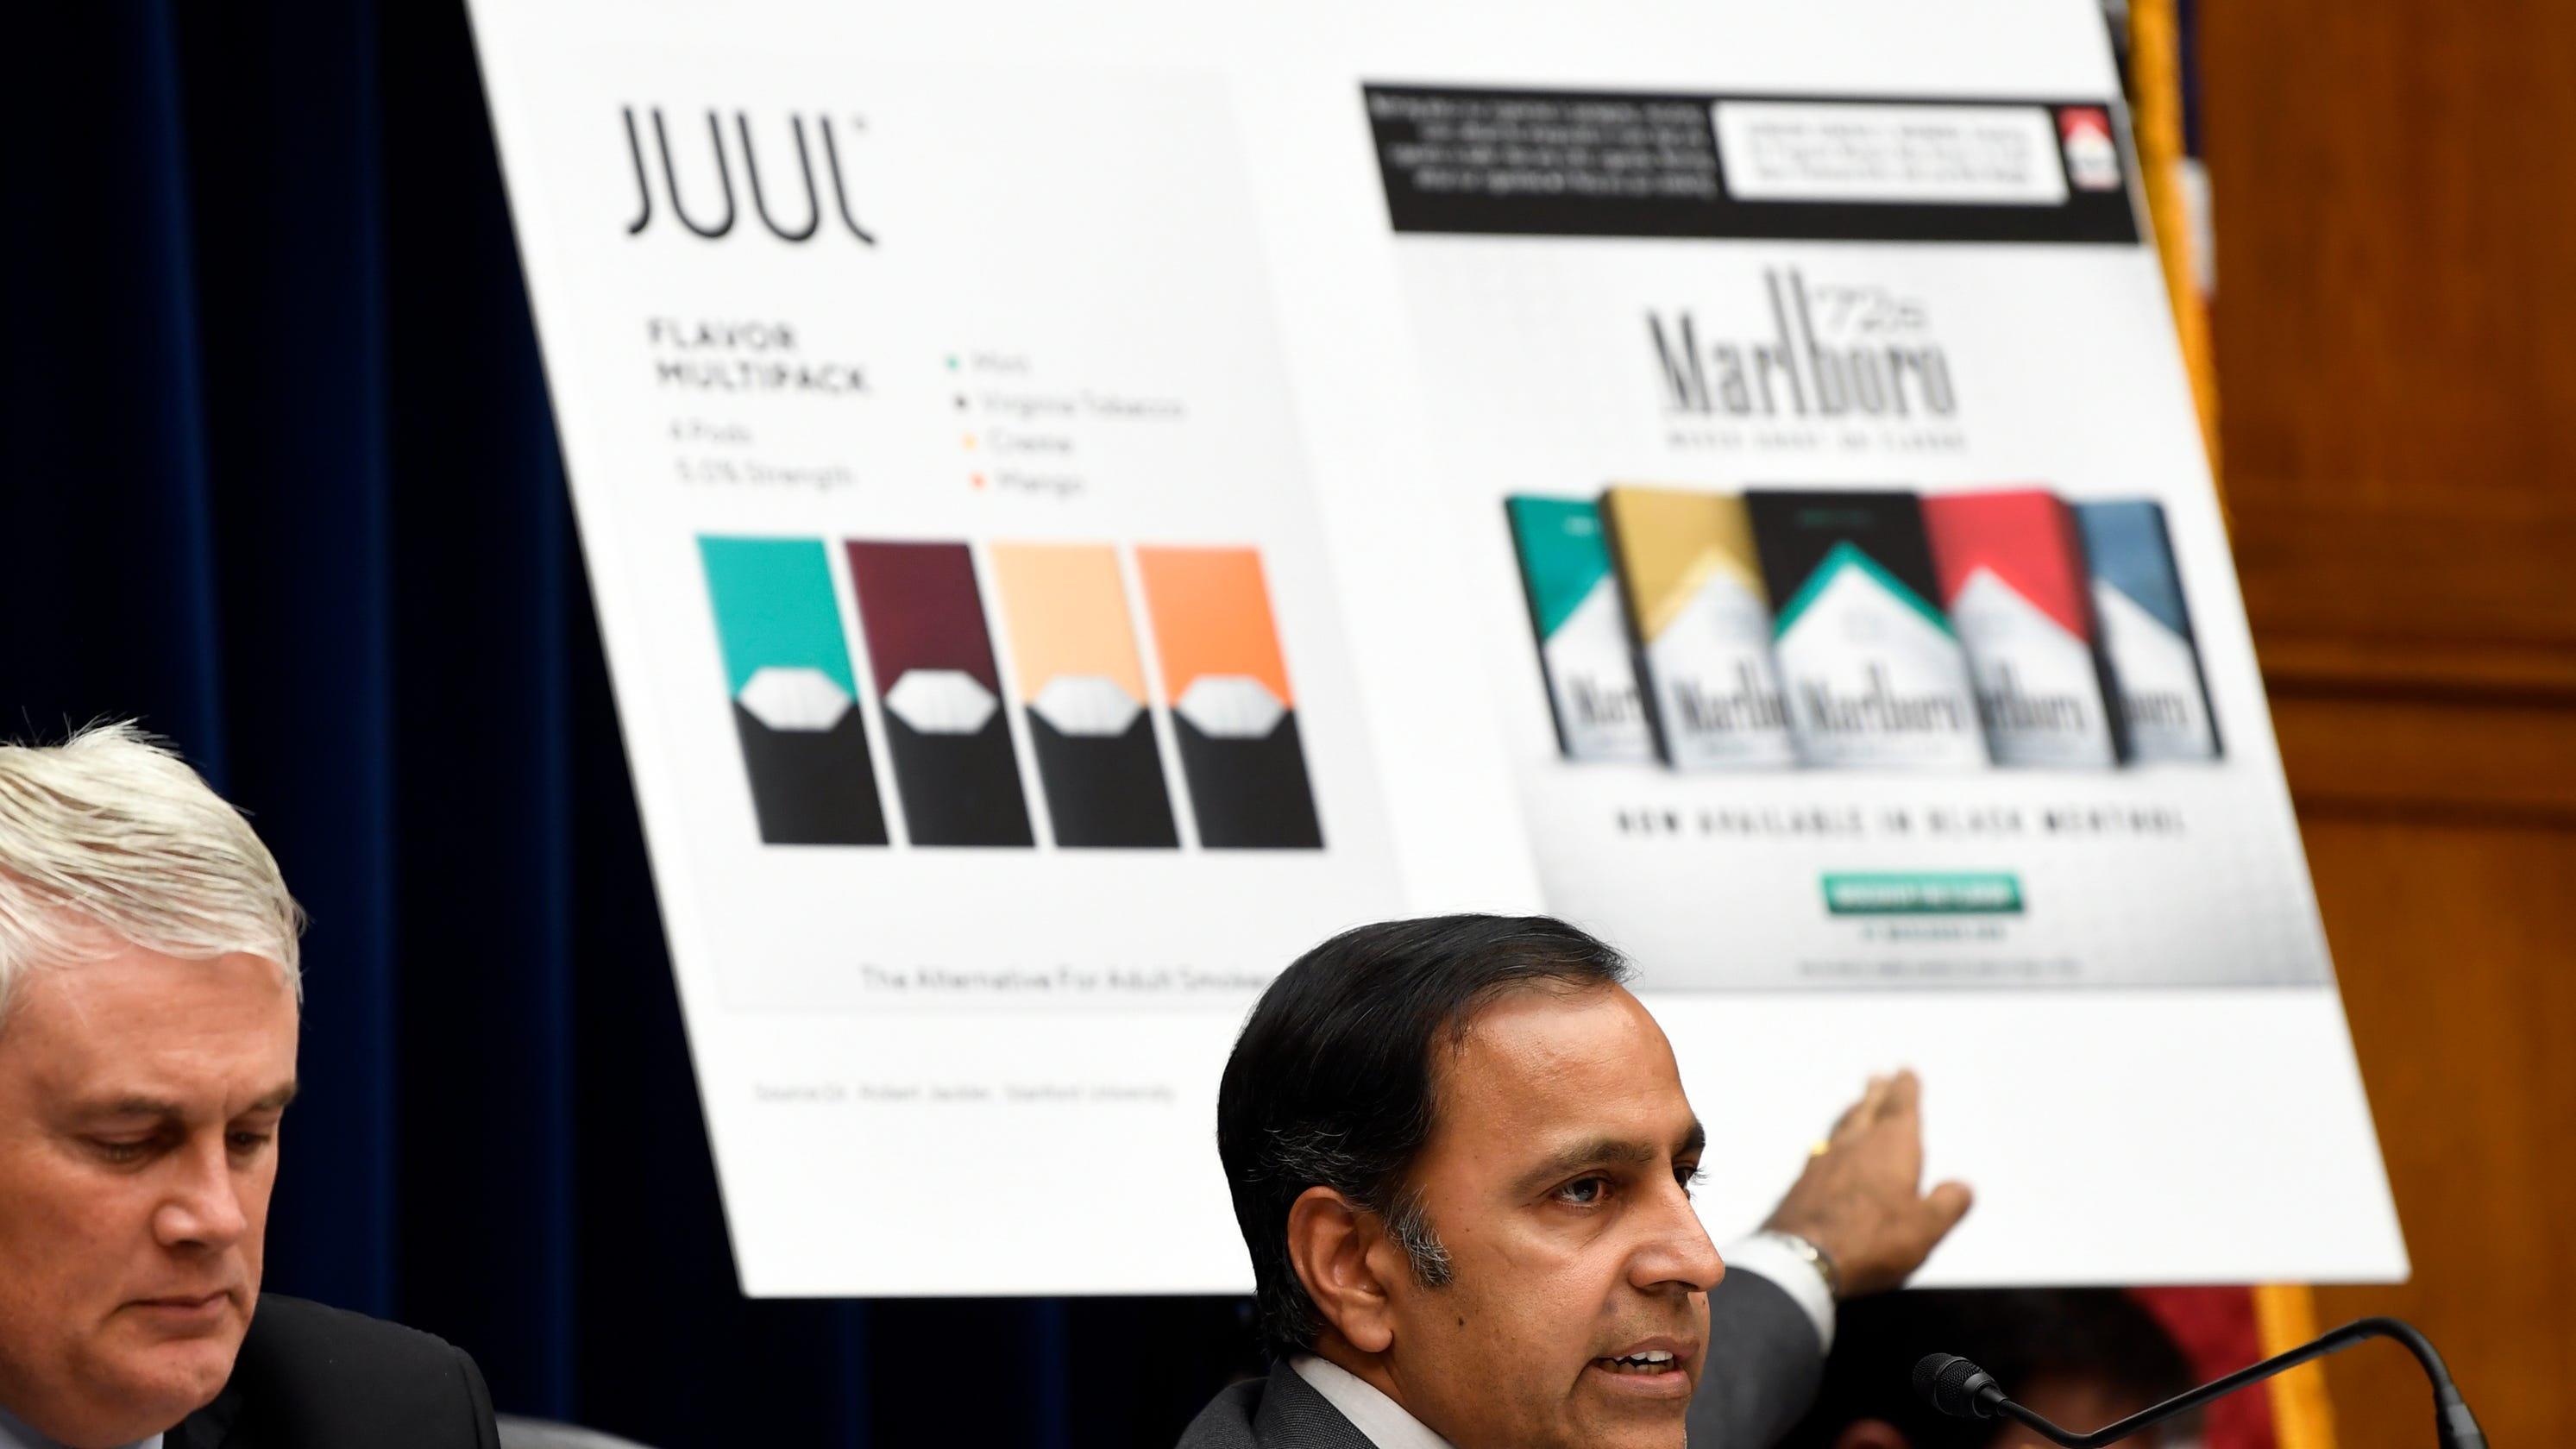 Juul exec: Never intended electronic cigarette for teens